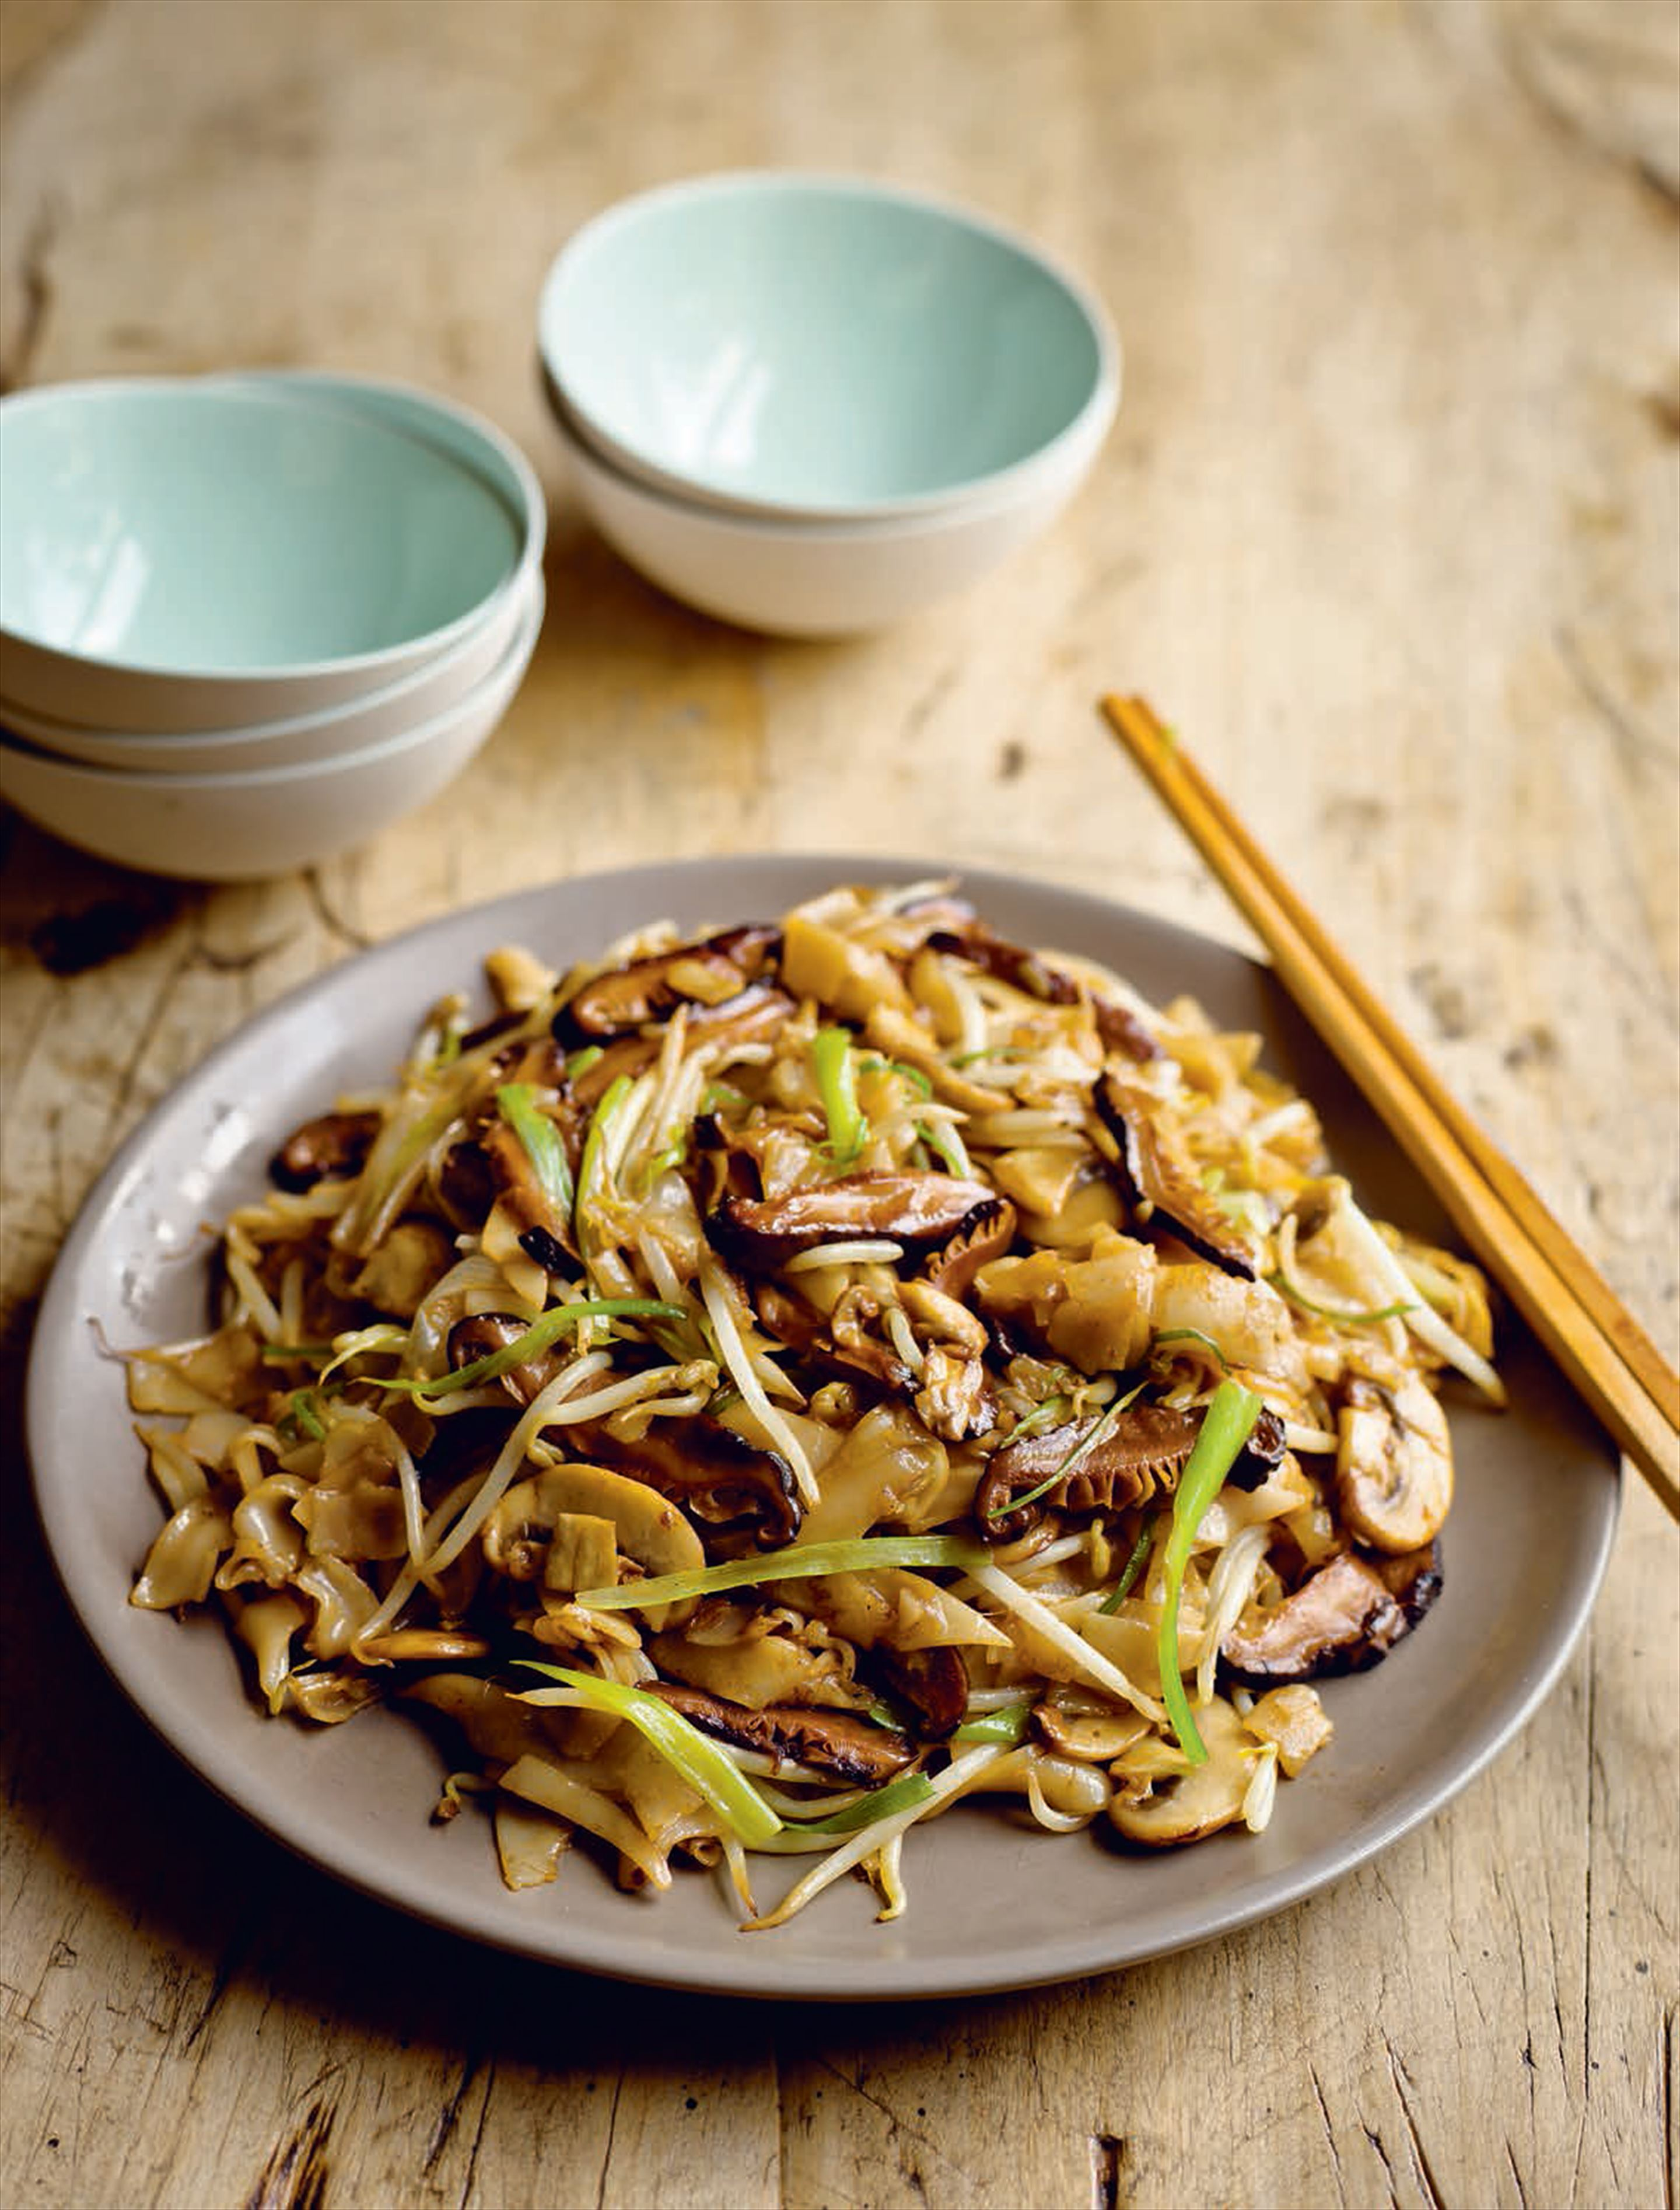 Ho fun rice noodles with mushrooms